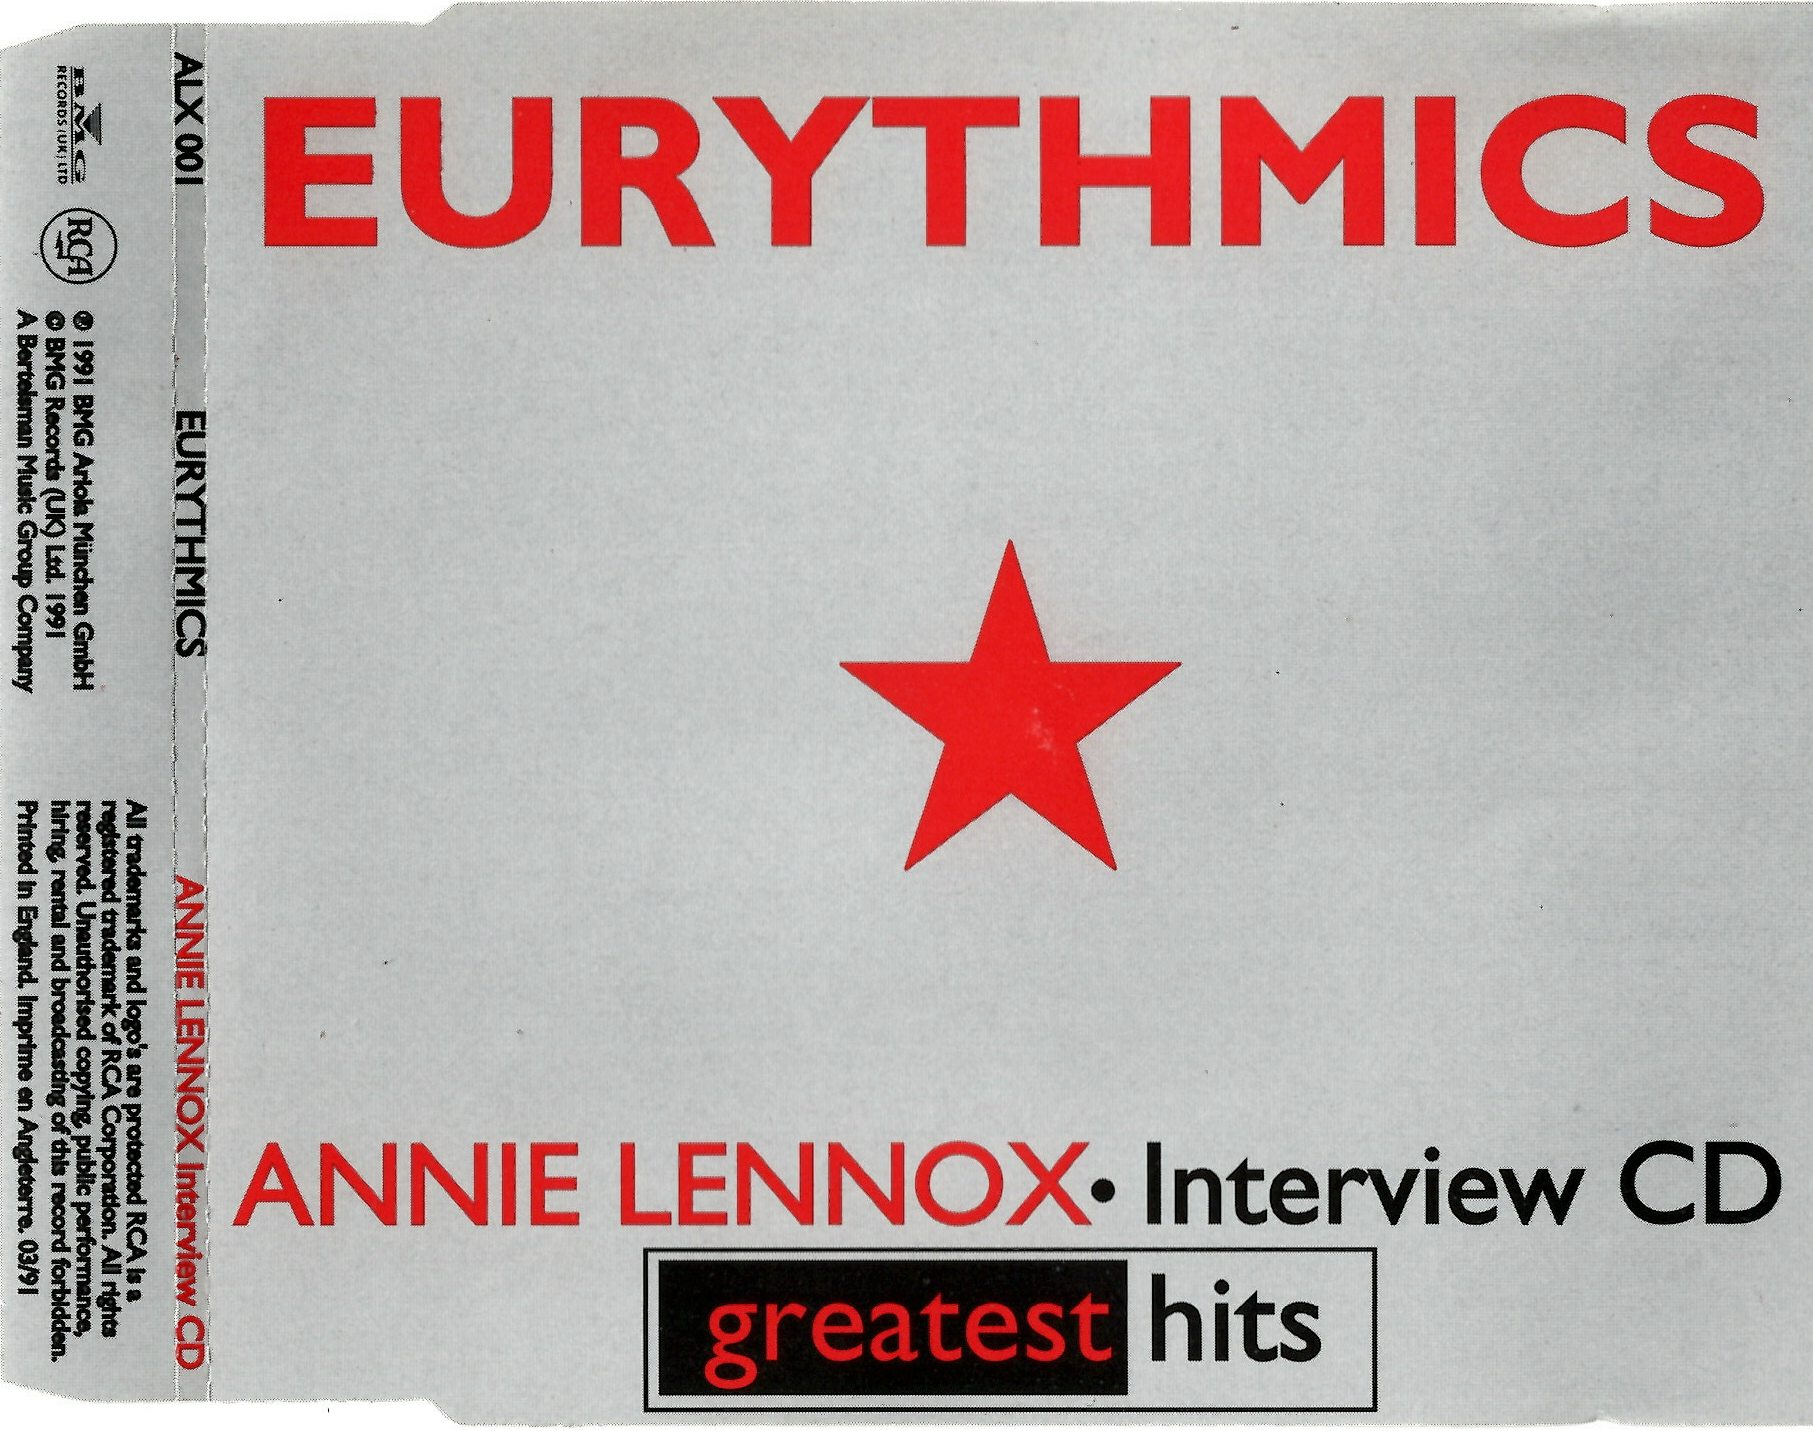 3244 - Eurythmics - Other Promos - Greatest Hits Promo Interview - UK - Promo CD - ALX001